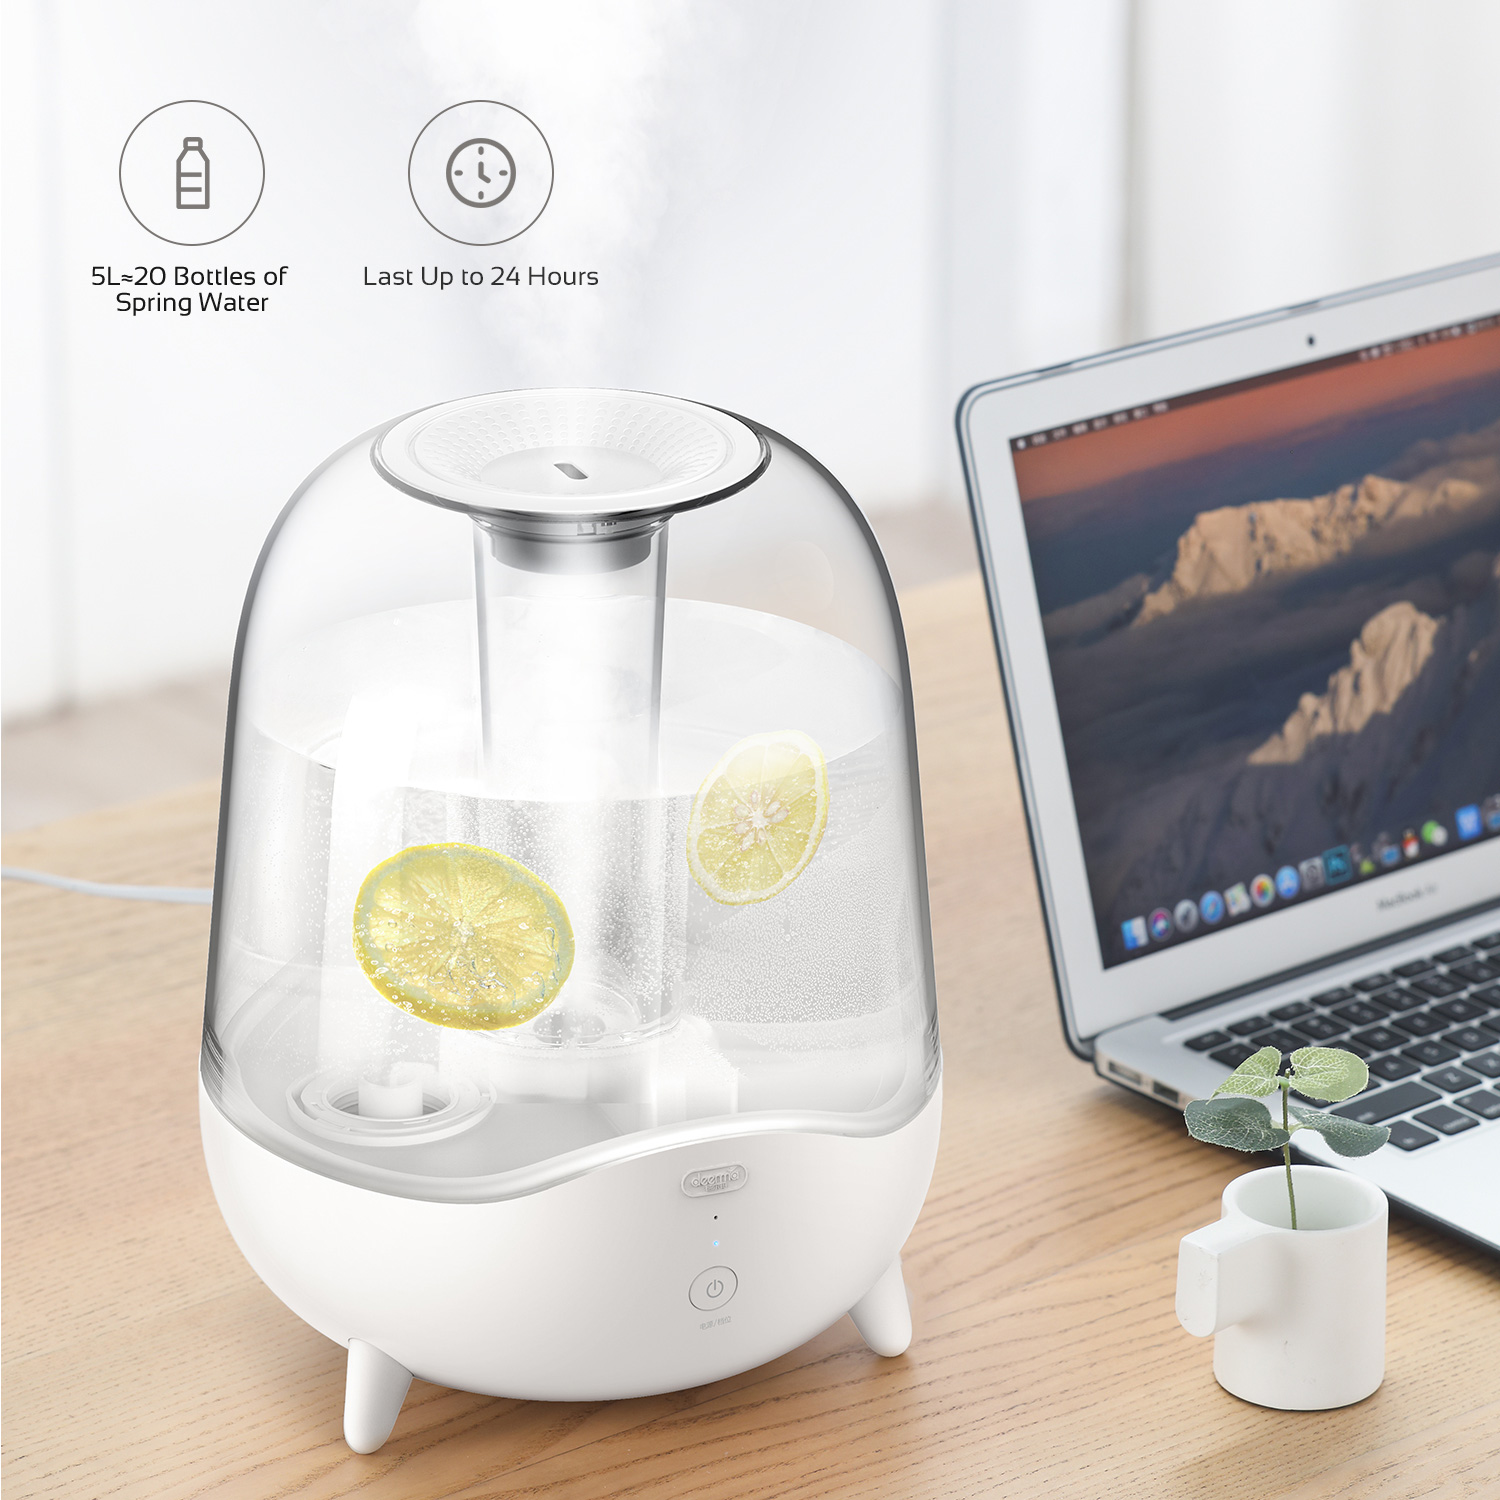 [US Direct] Original DEERMA 5L Ultrasonic Cool Mist Humidifier for Bedroom, Large Room, Office, Baby with Crystal Clear Transparent Water Tank White